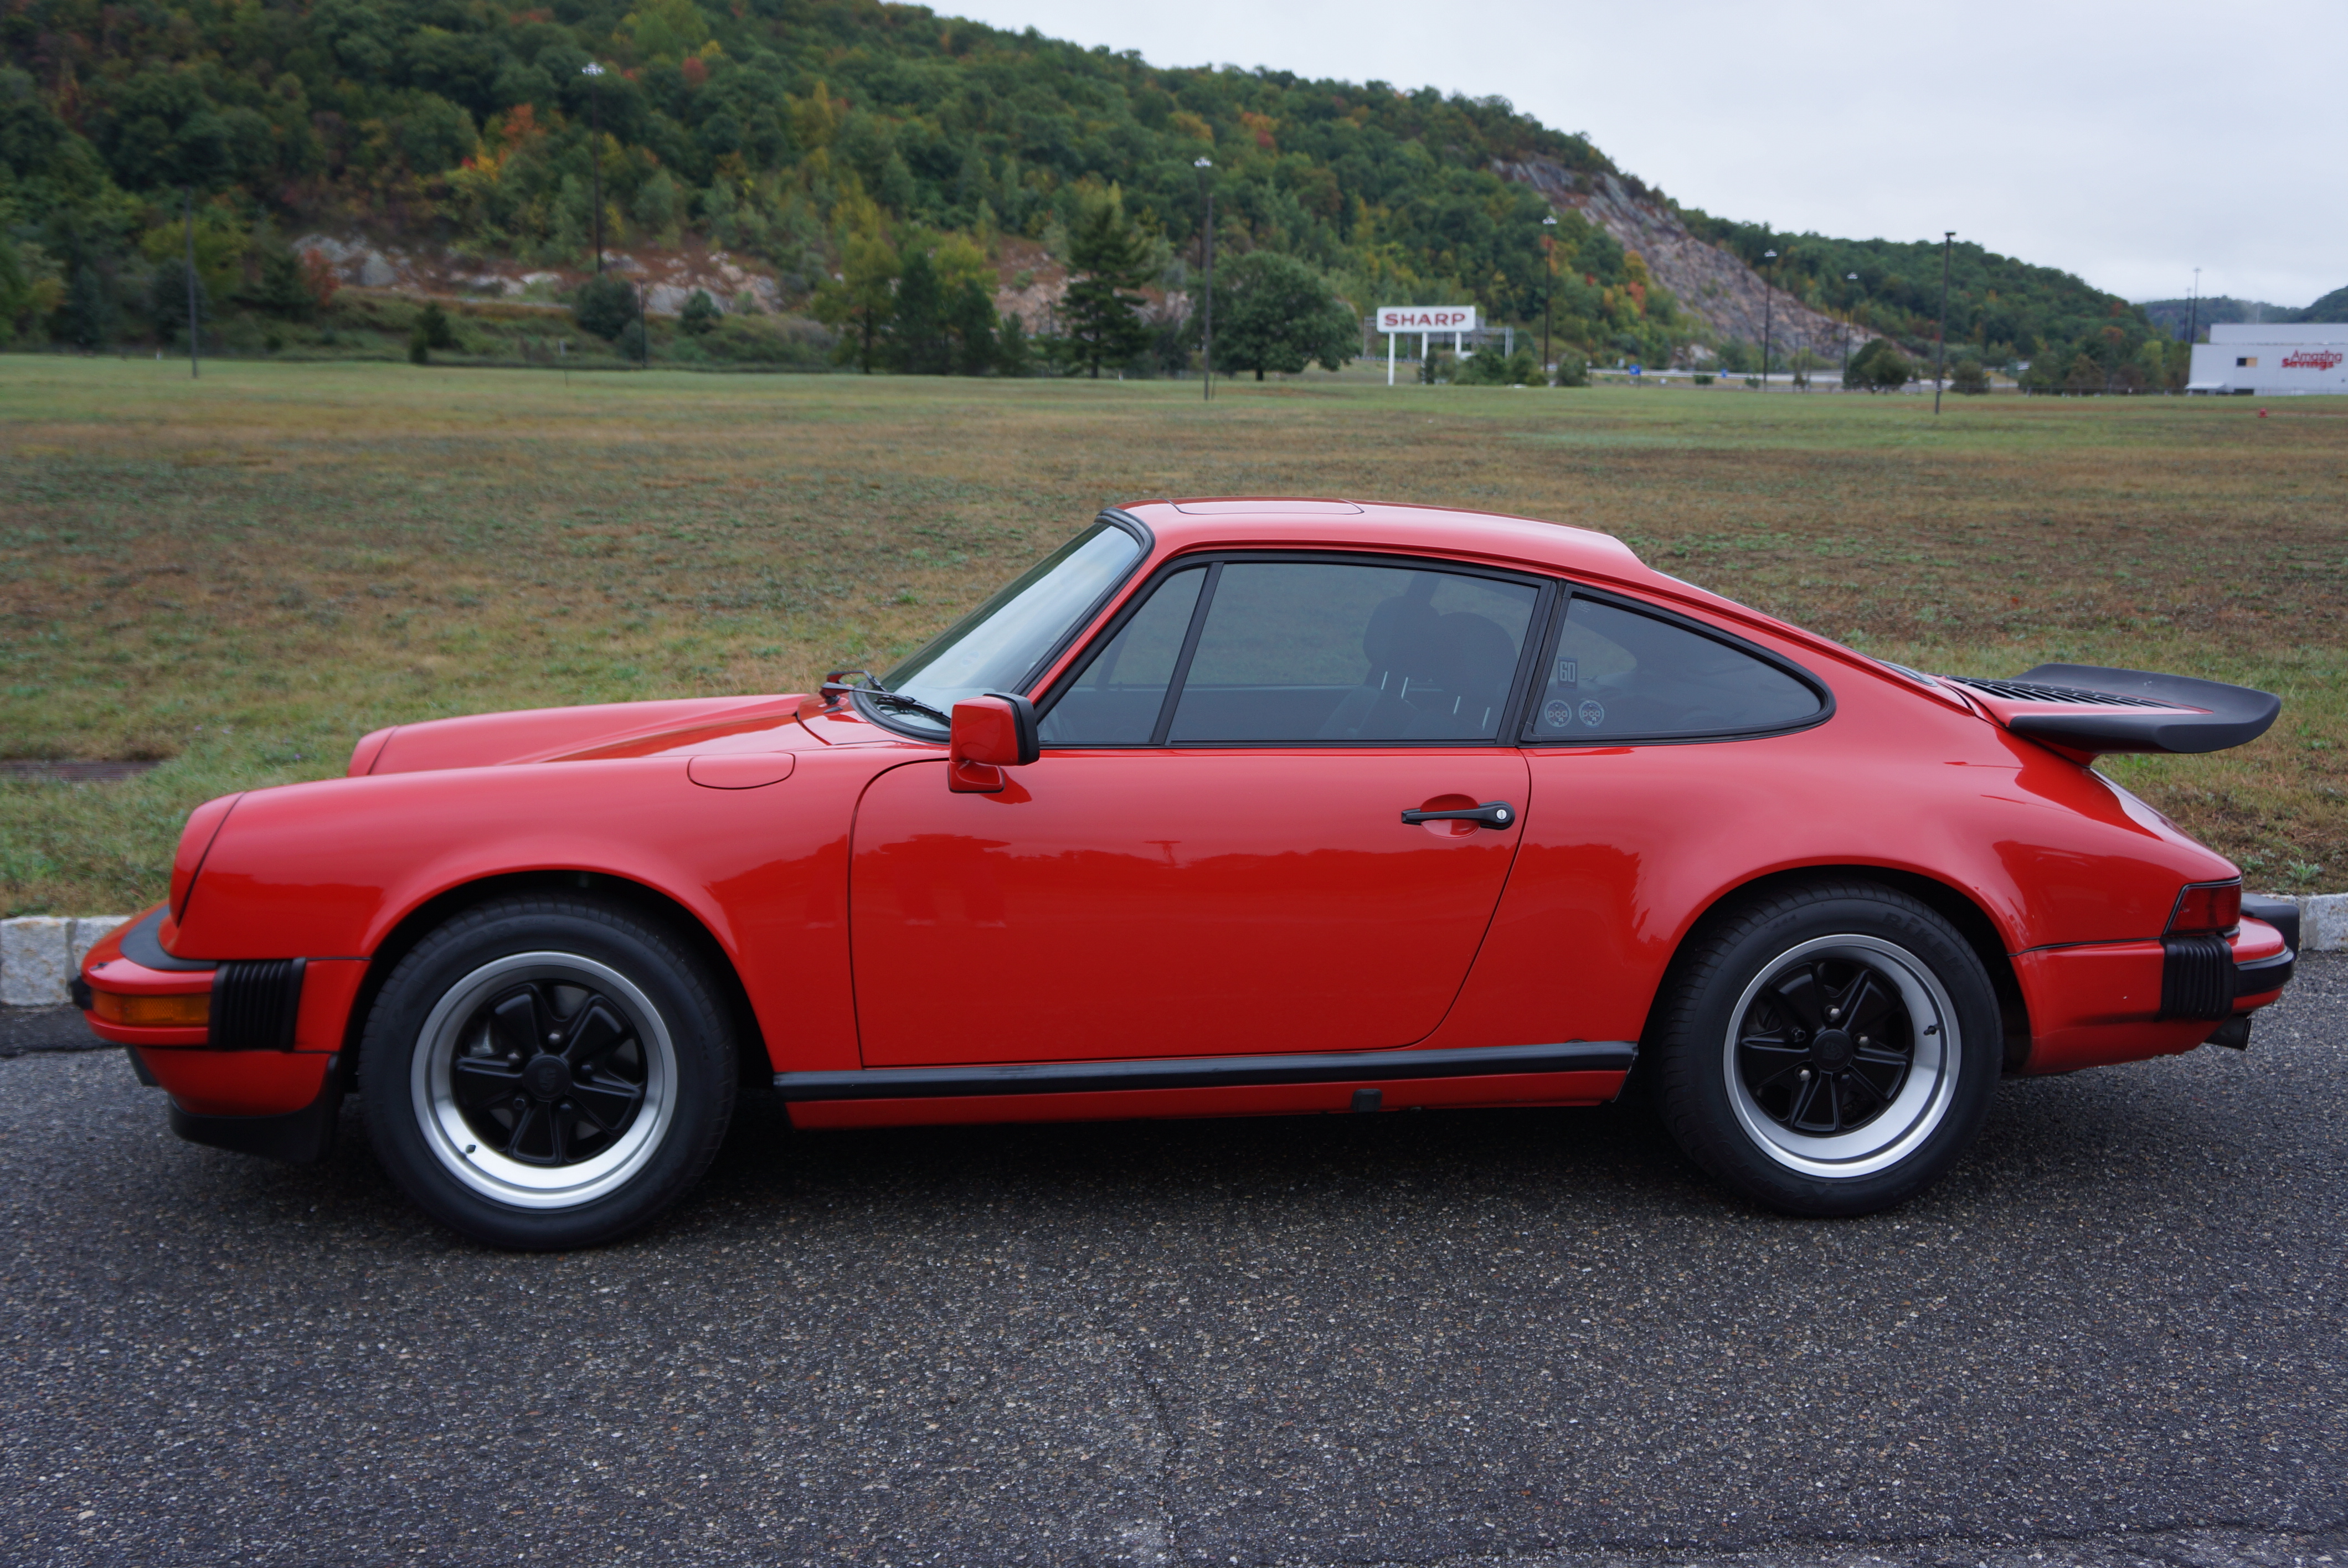 Peter's RED 911